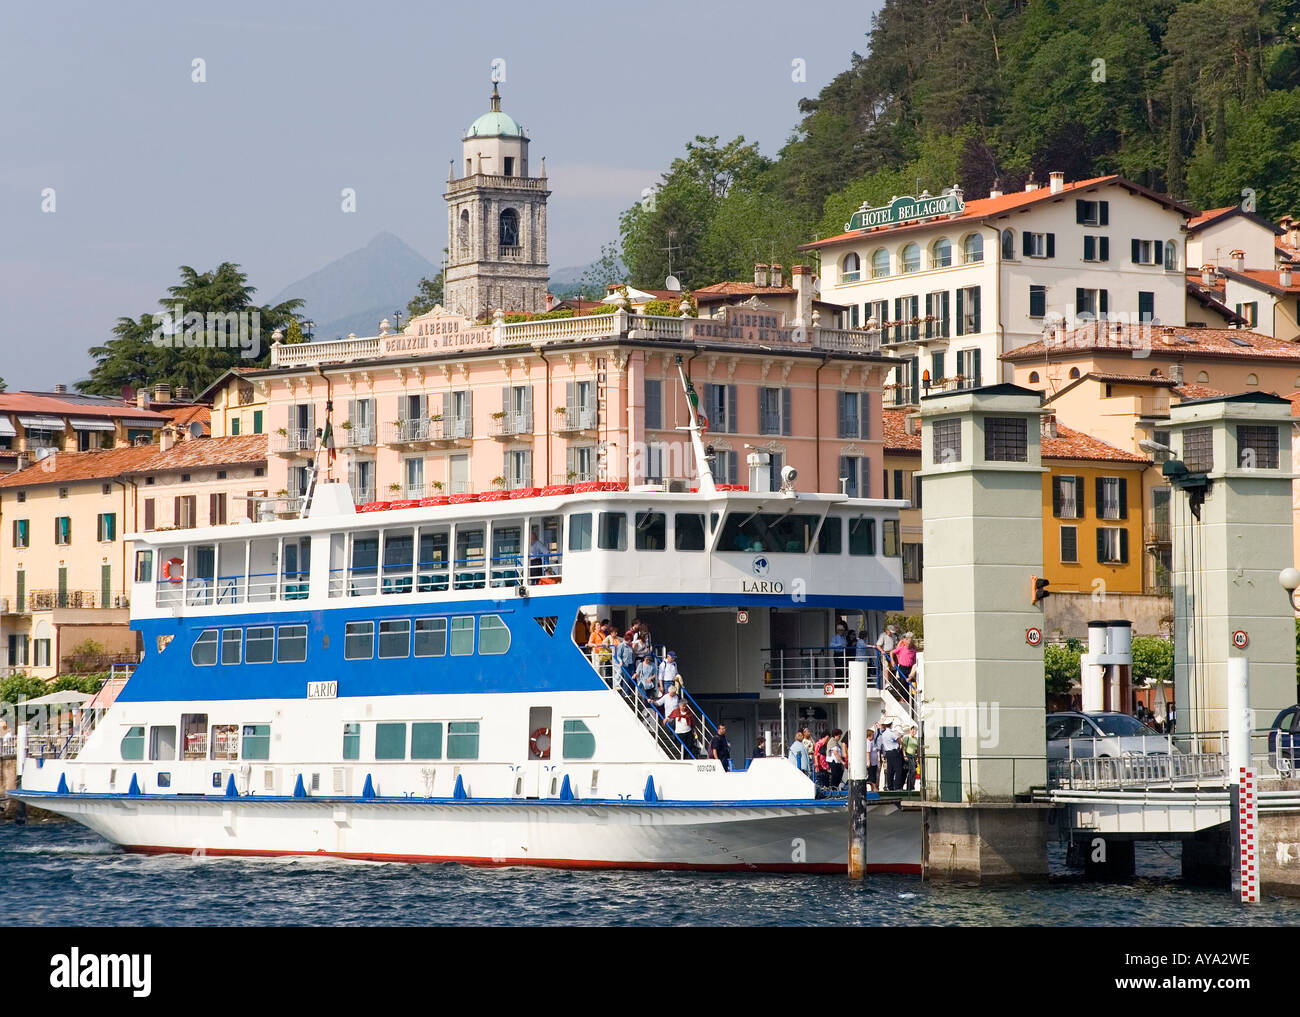 A ferry boat arrives in Bellagio, Lake Como, Italy - Stock Image